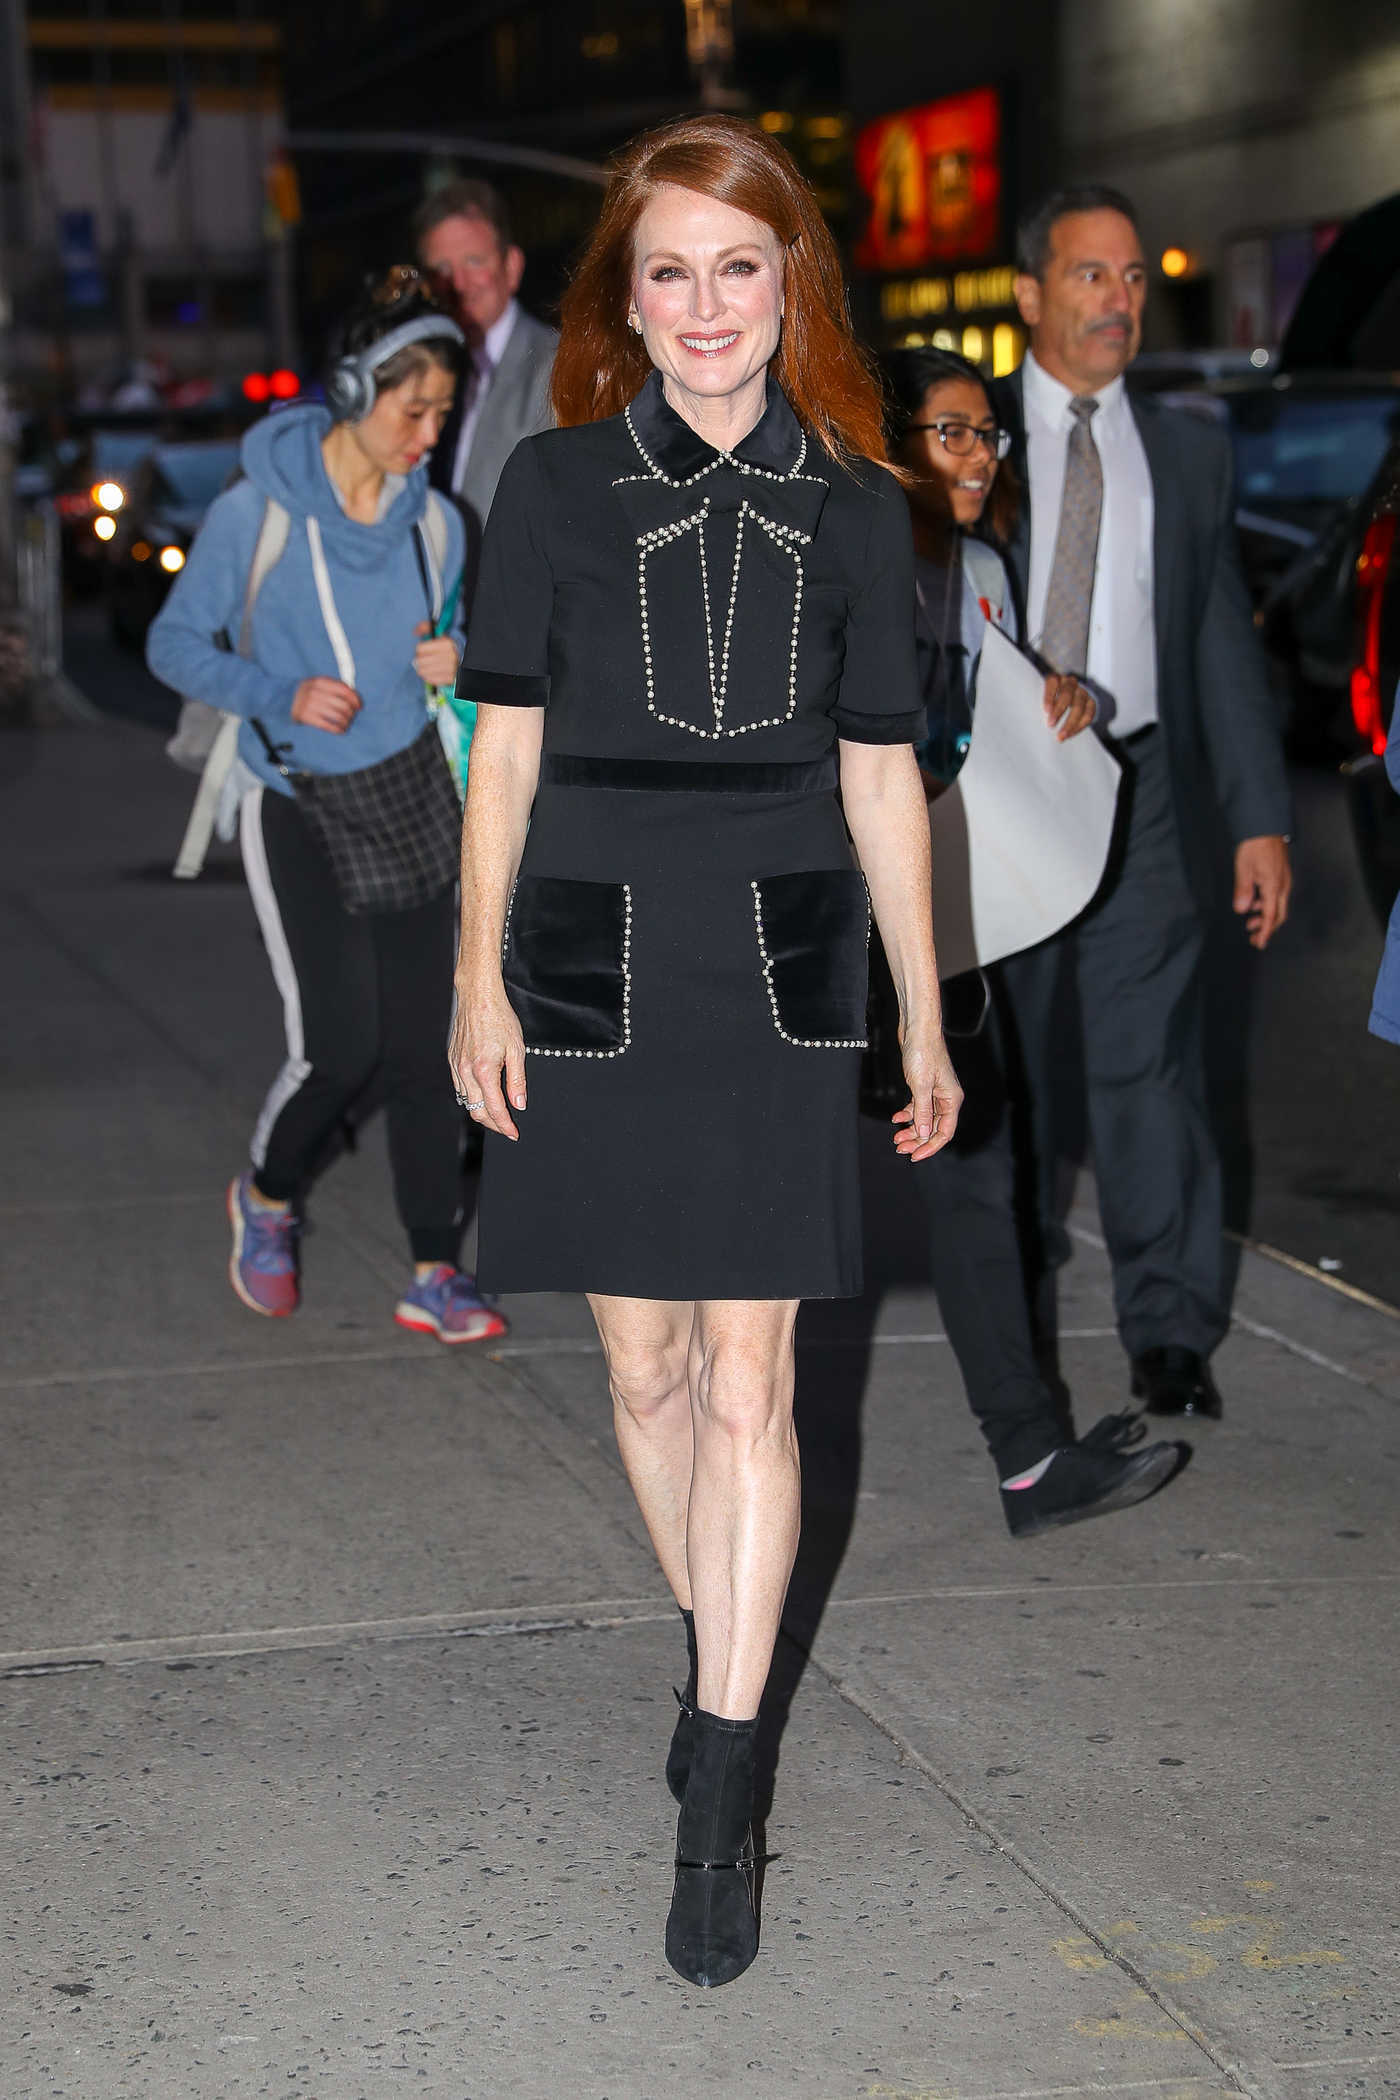 Julianne Moore Arrives at The Late Show With Stephen Colbert in New York City 10/26/2017